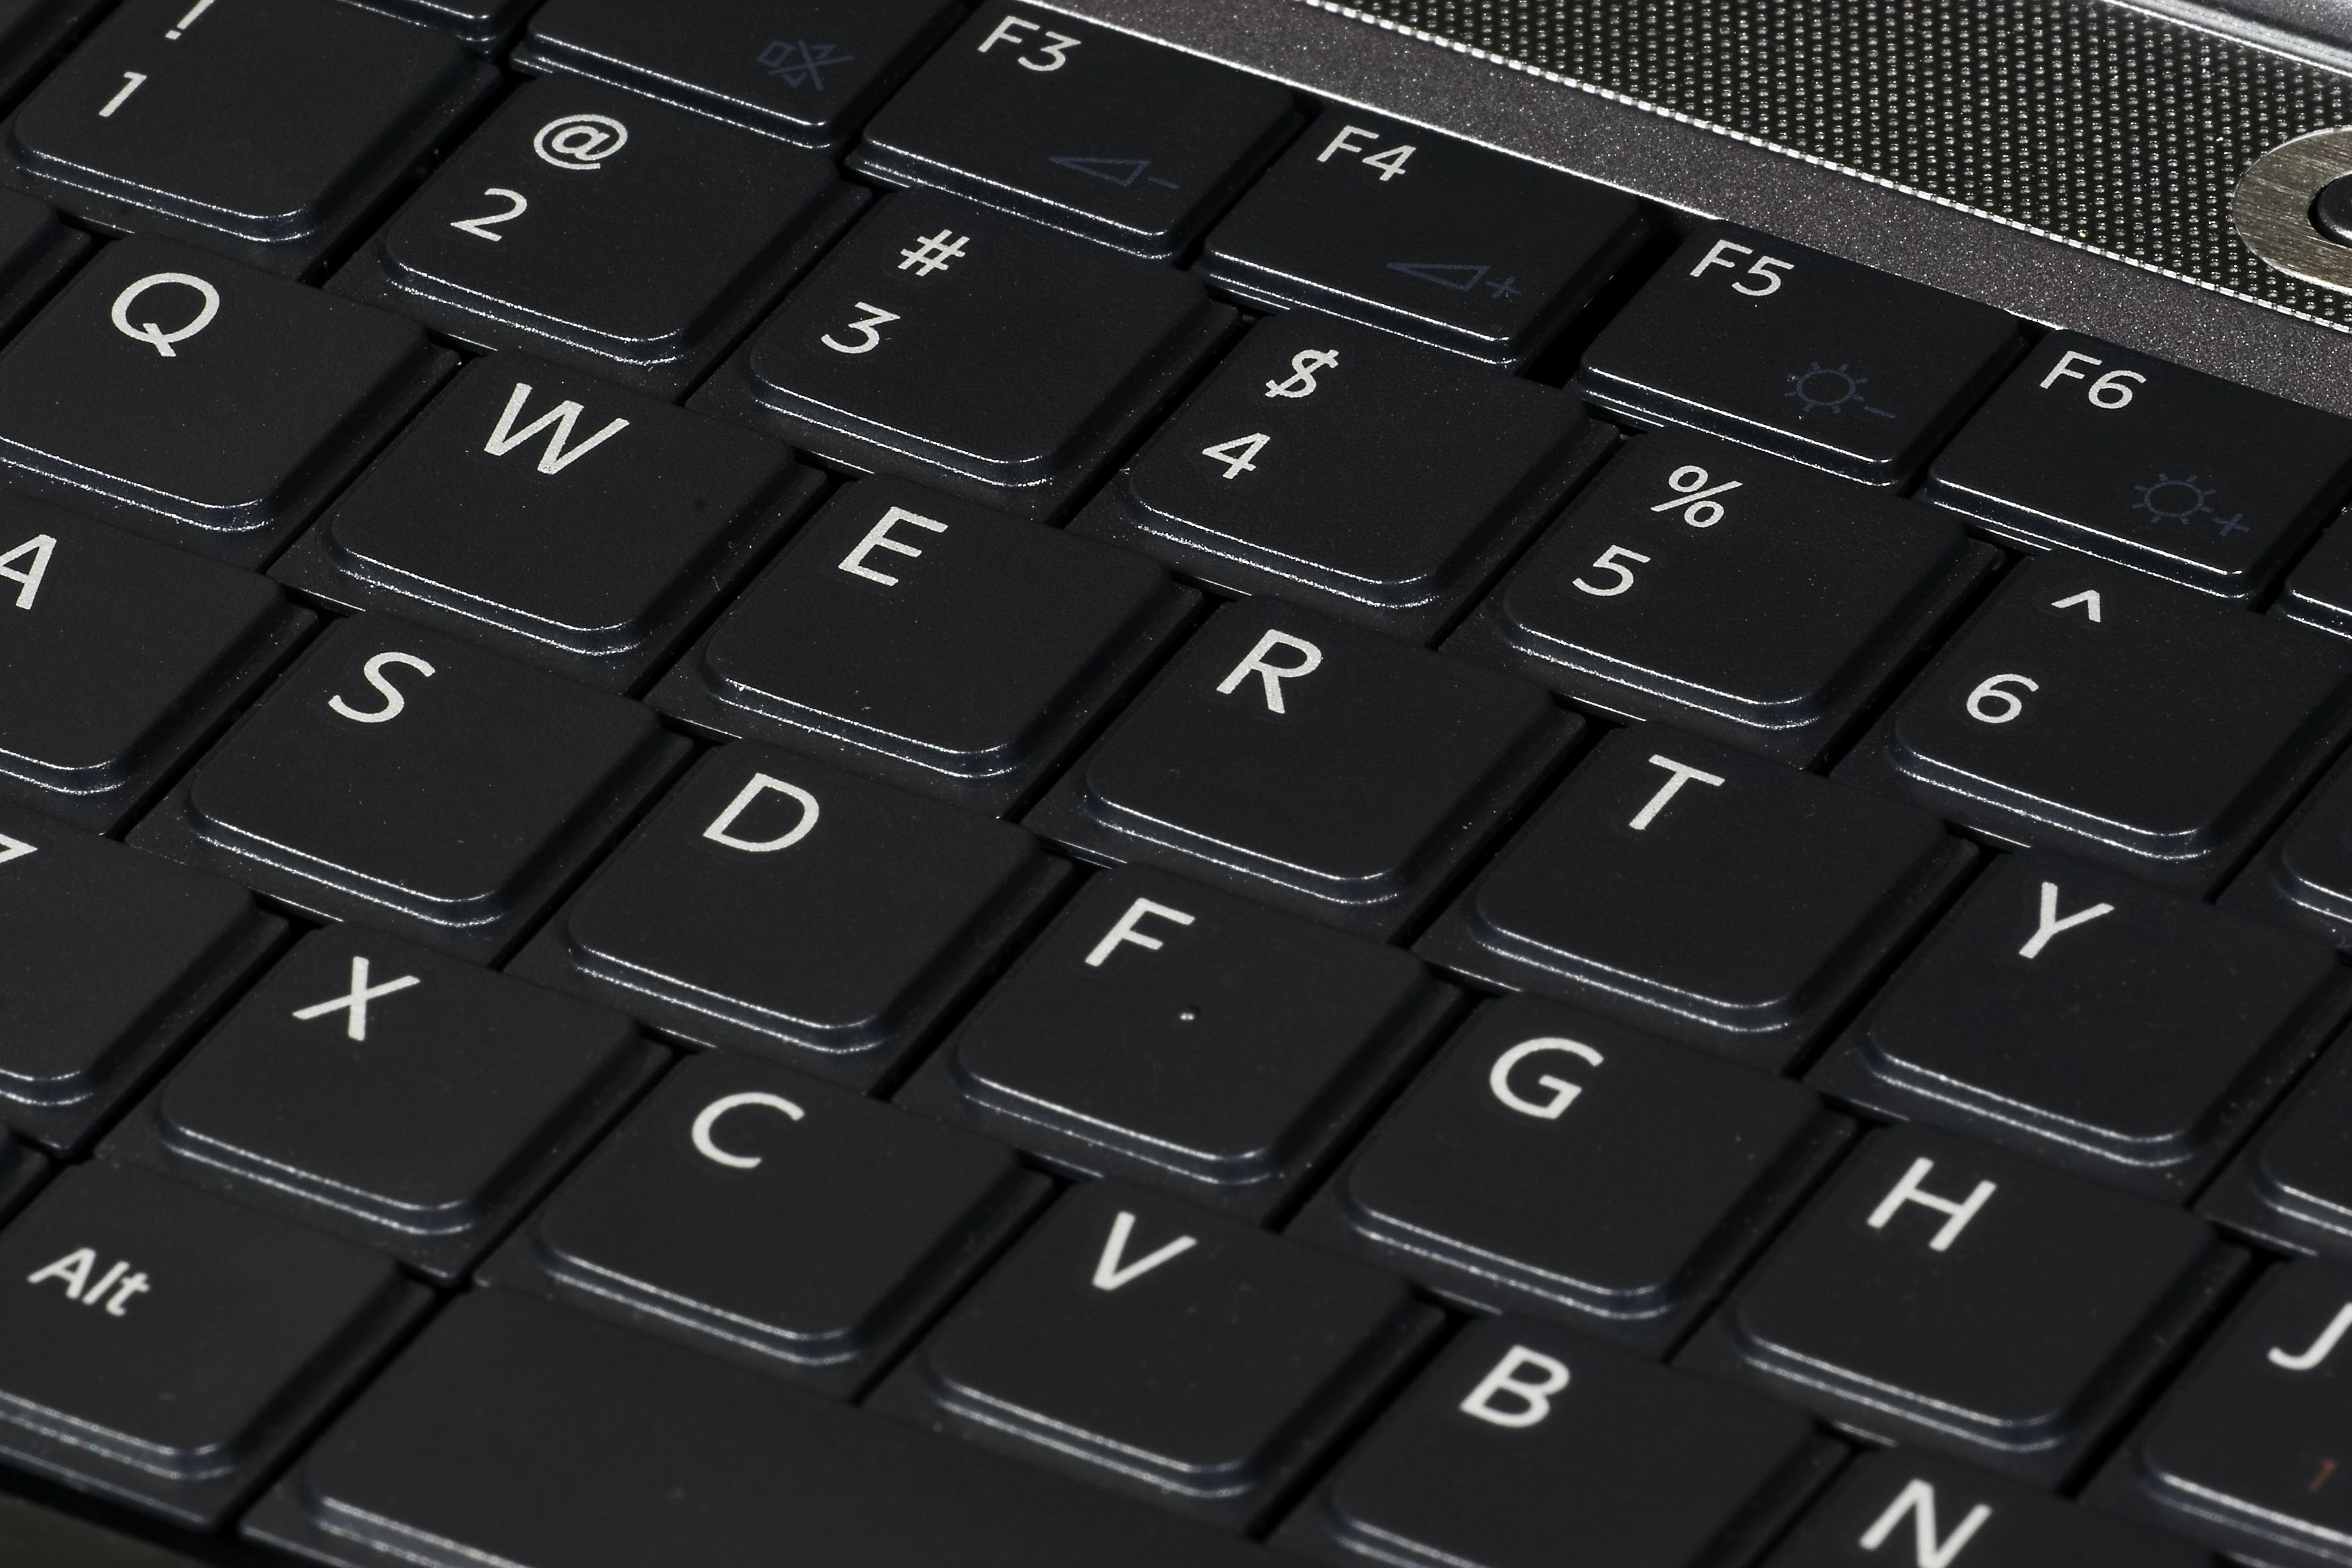 Keyboard qwerty